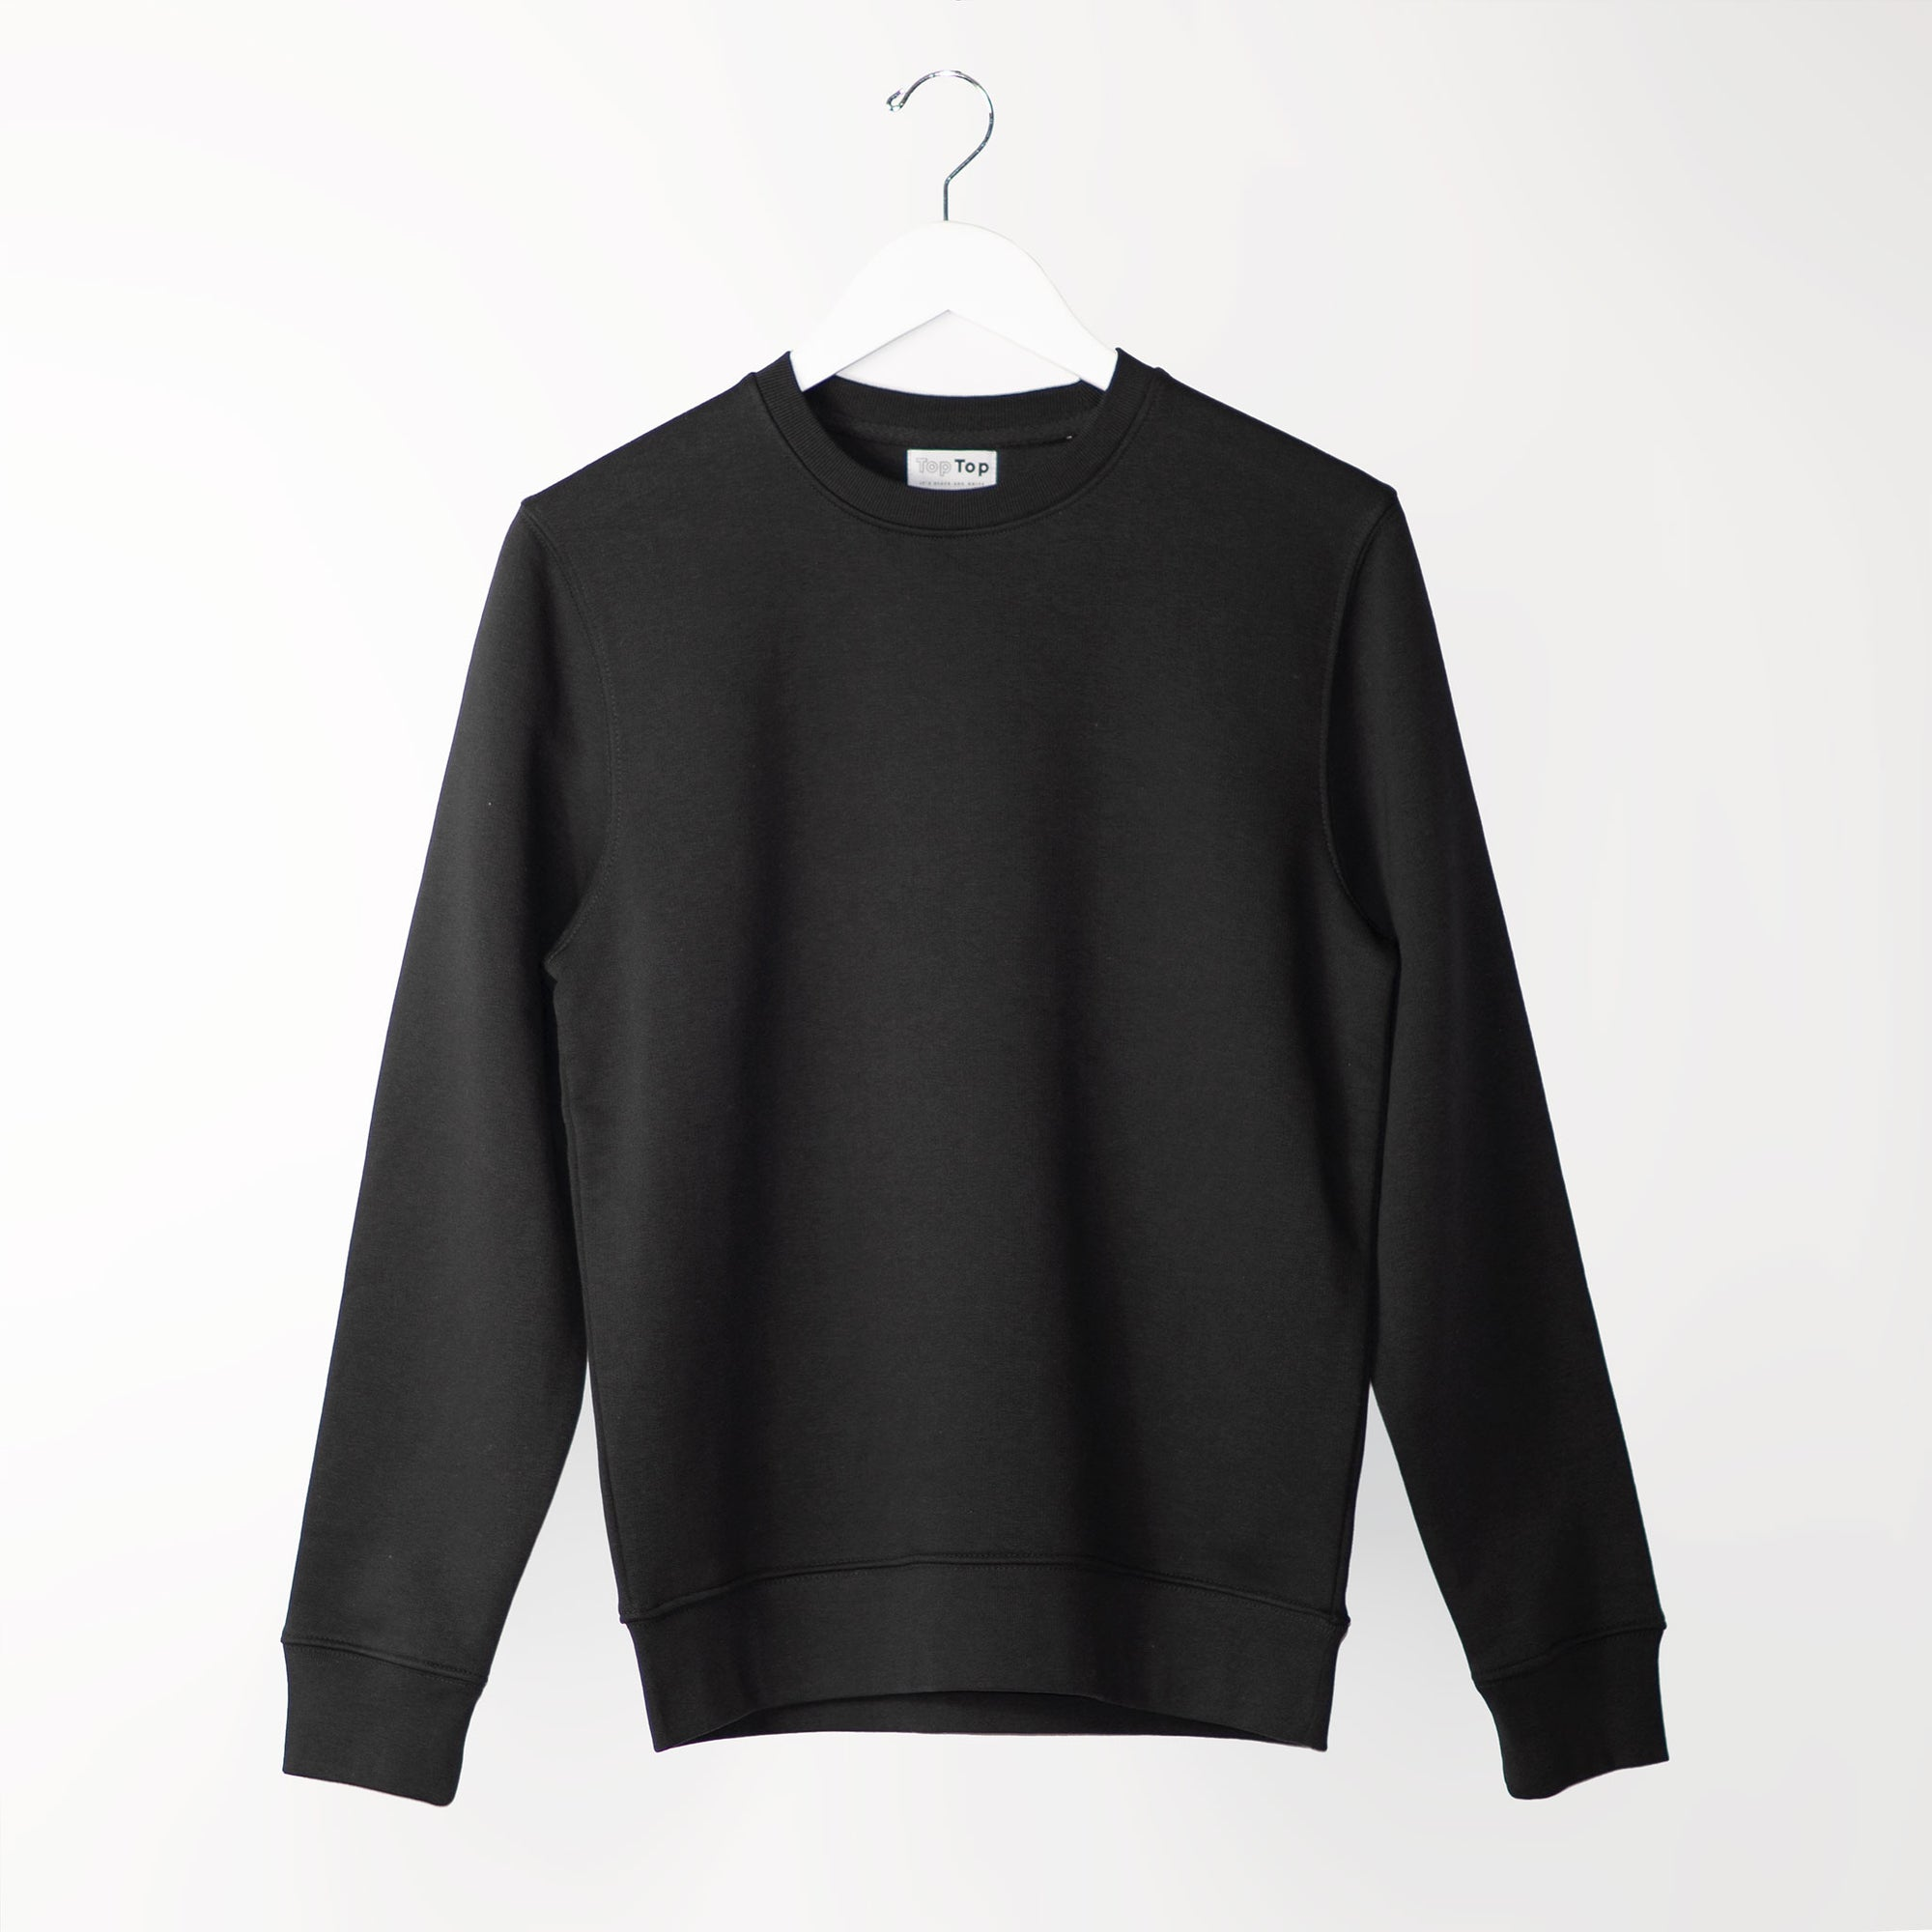 plain-black-sweatshirt-mens